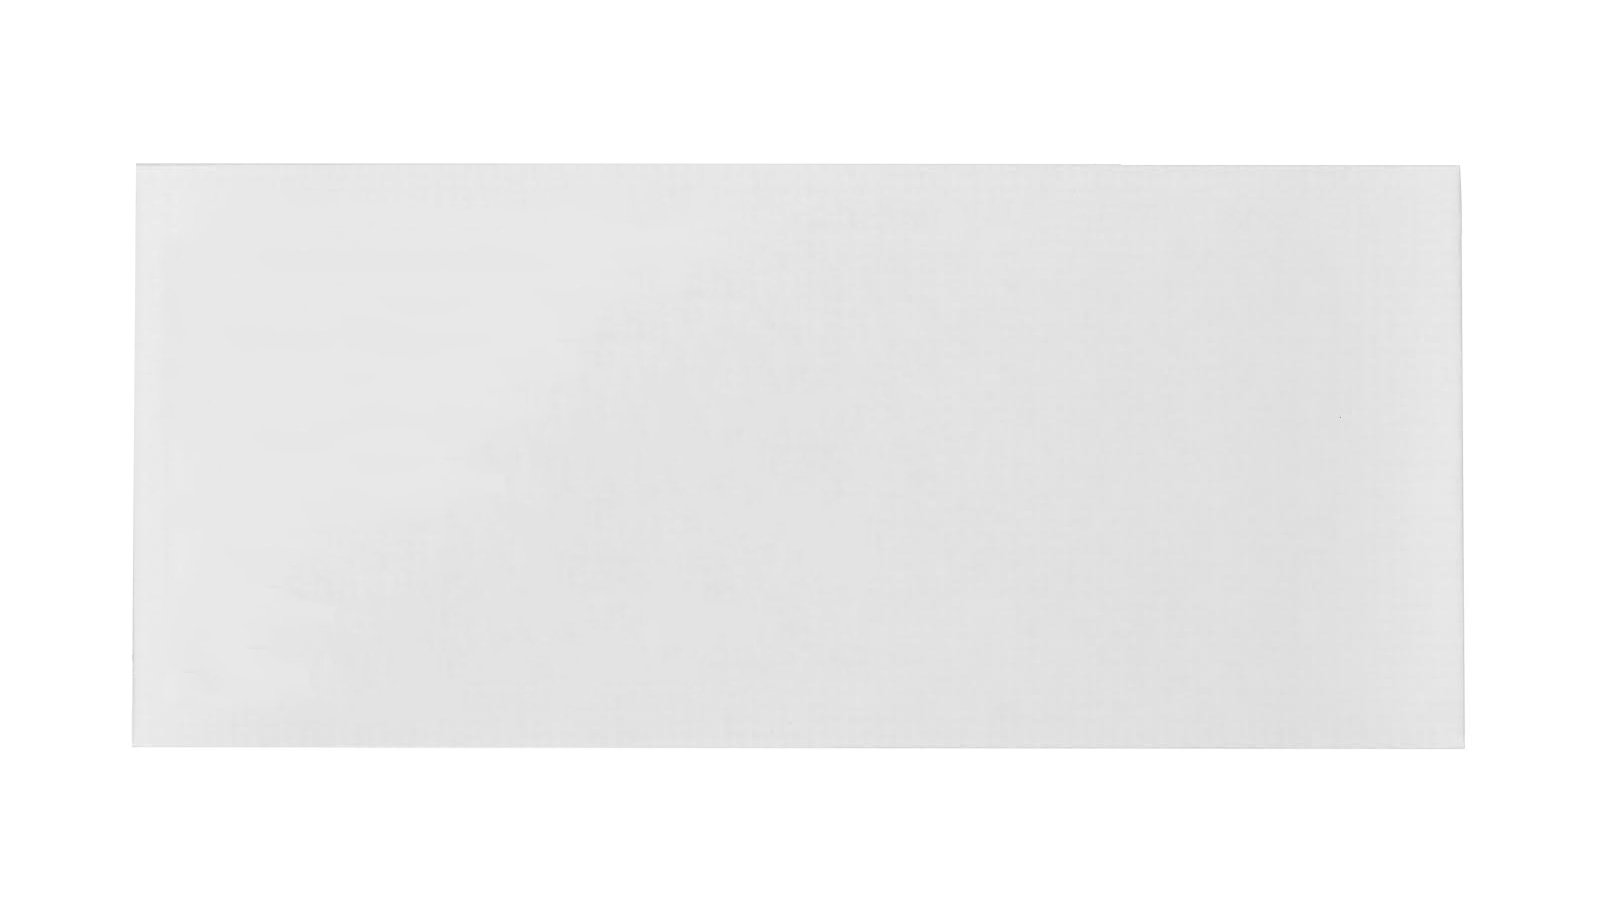 500 #10 Self Seal Security Envelopes-Designed for Secure Mailing-Security Tinted with Printer Friendly Design- 4 1/8 x 9 ½''-Pack of 500 by Blue Summit Supplies (Image #2)